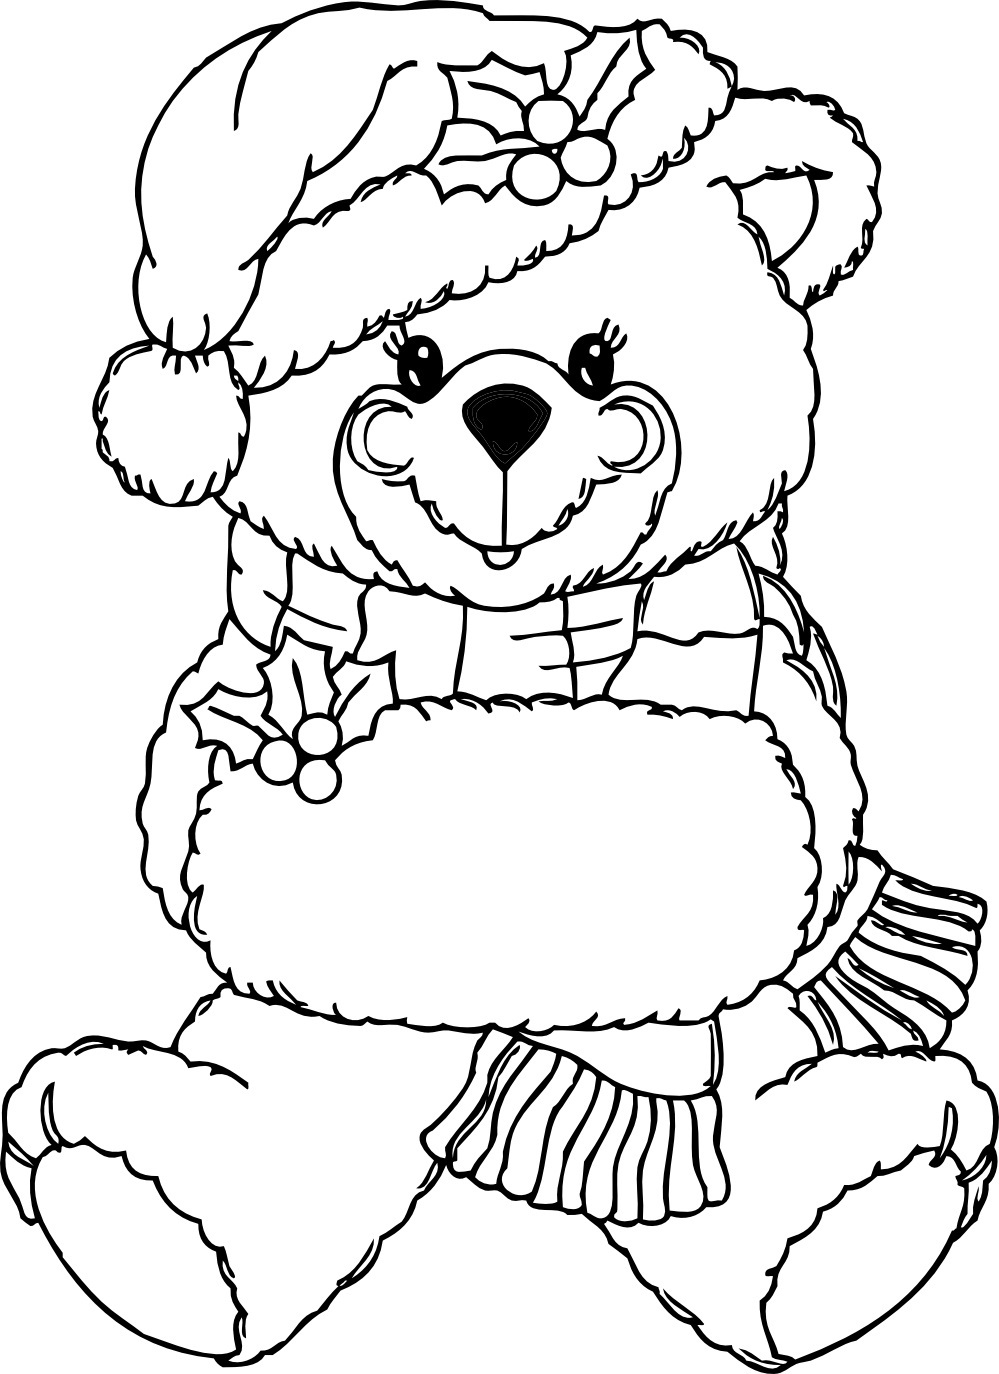 Free printable teddy bear coloring pages for kids for Art is fun coloring pages